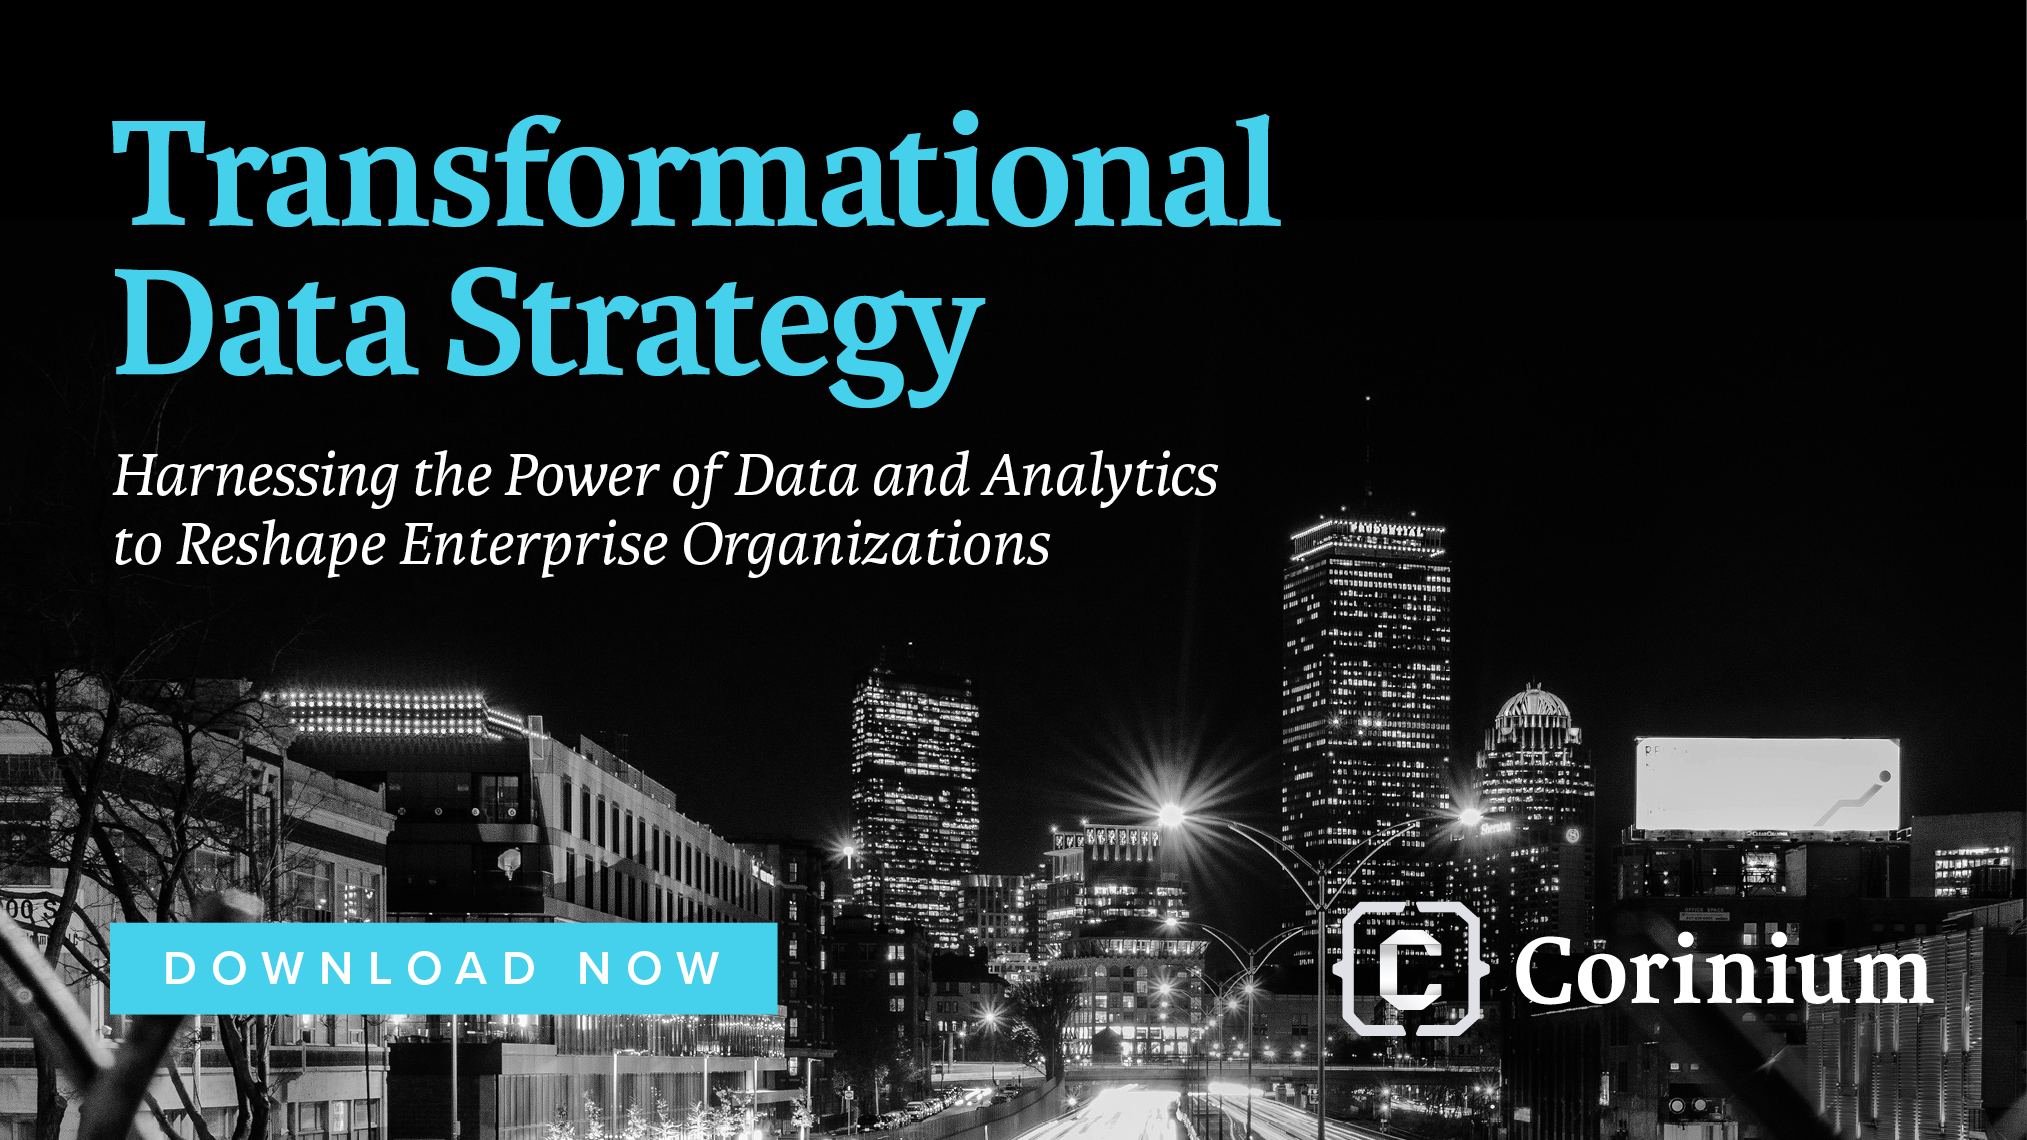 Transformational data strategy download now ad